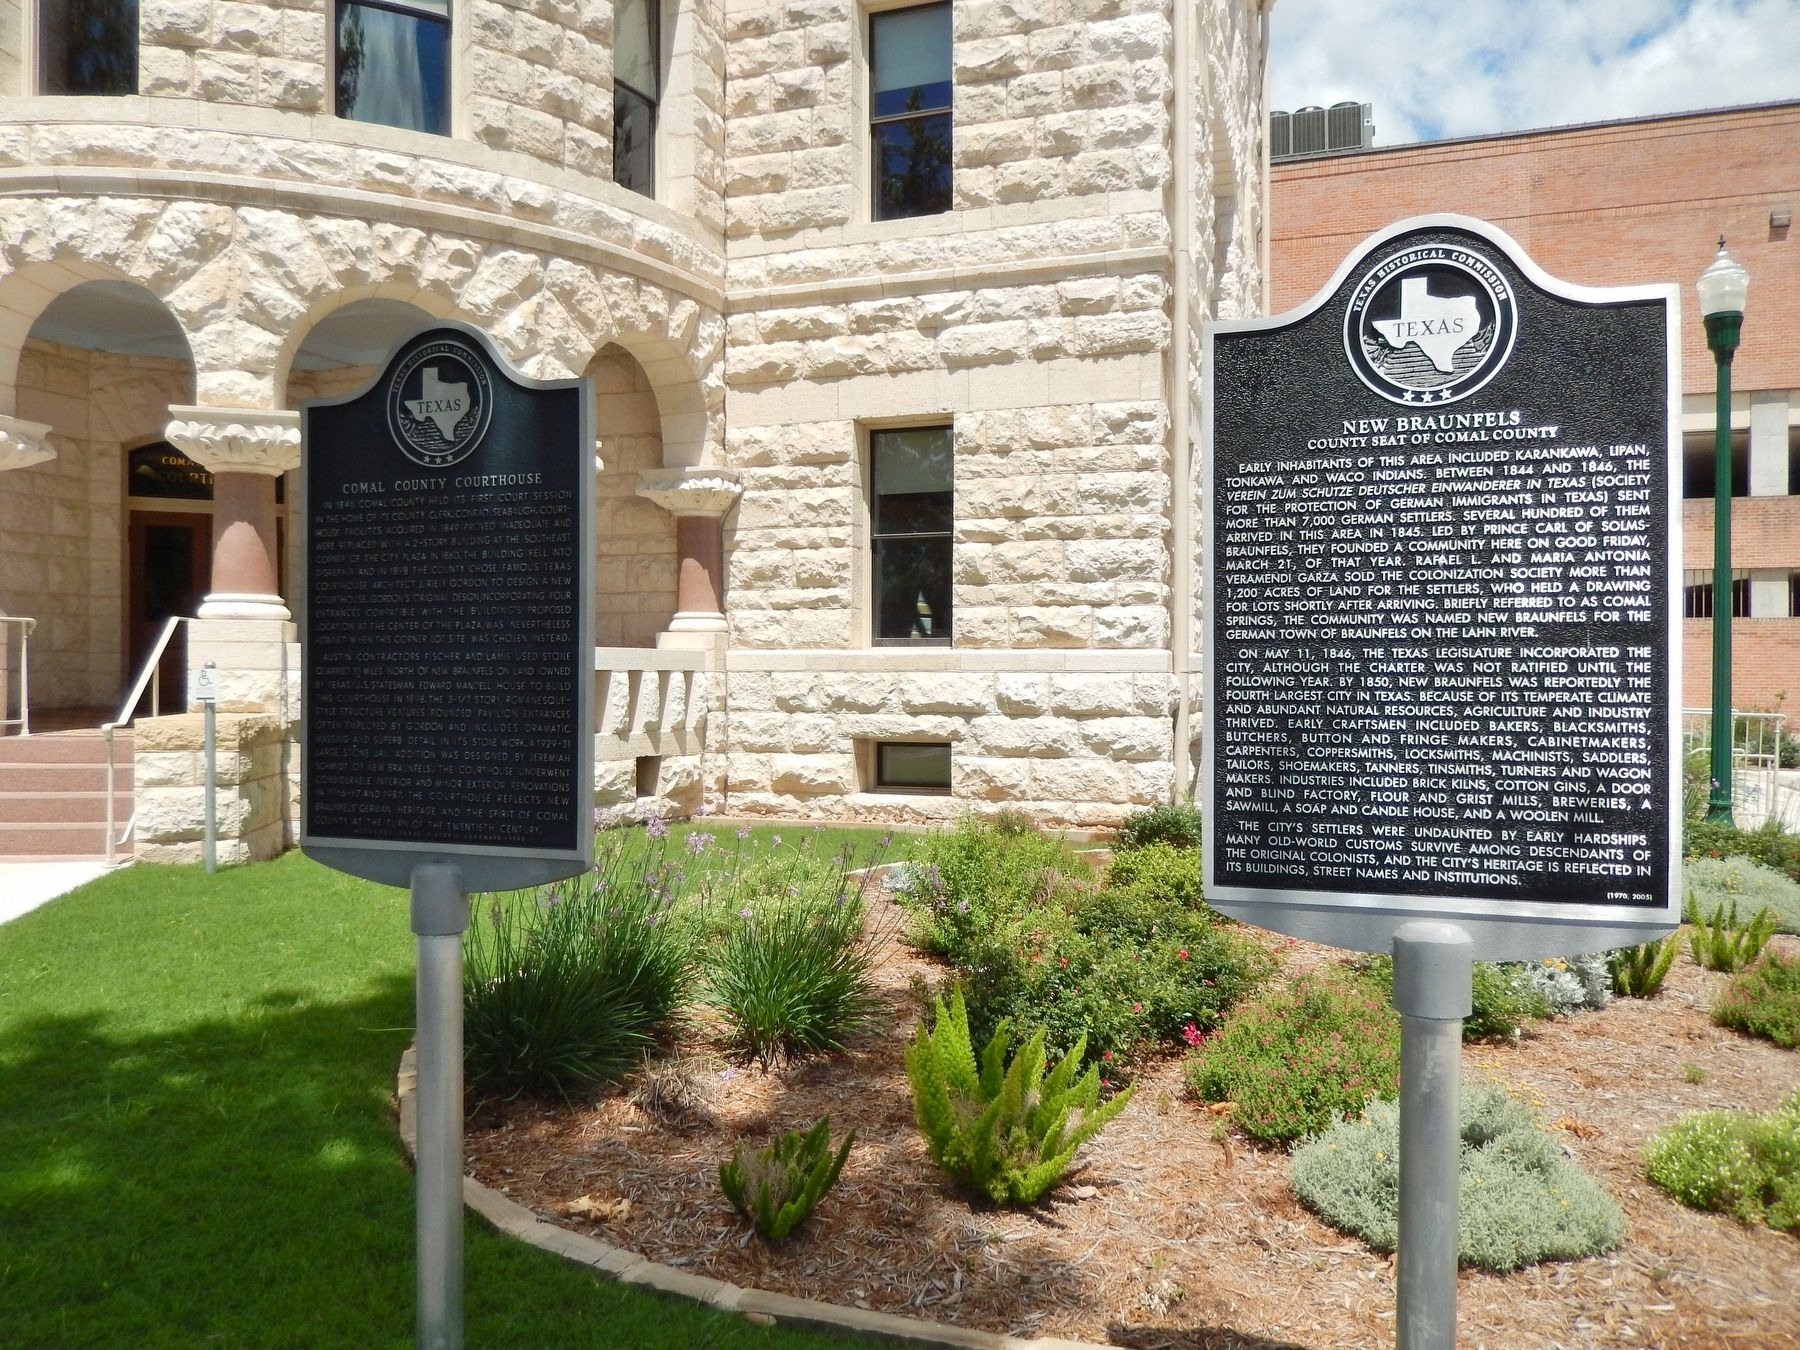 New Braunfels Marker (<i>wide view showing adjacent marker and courthouse in background</i>) image. Click for full size.